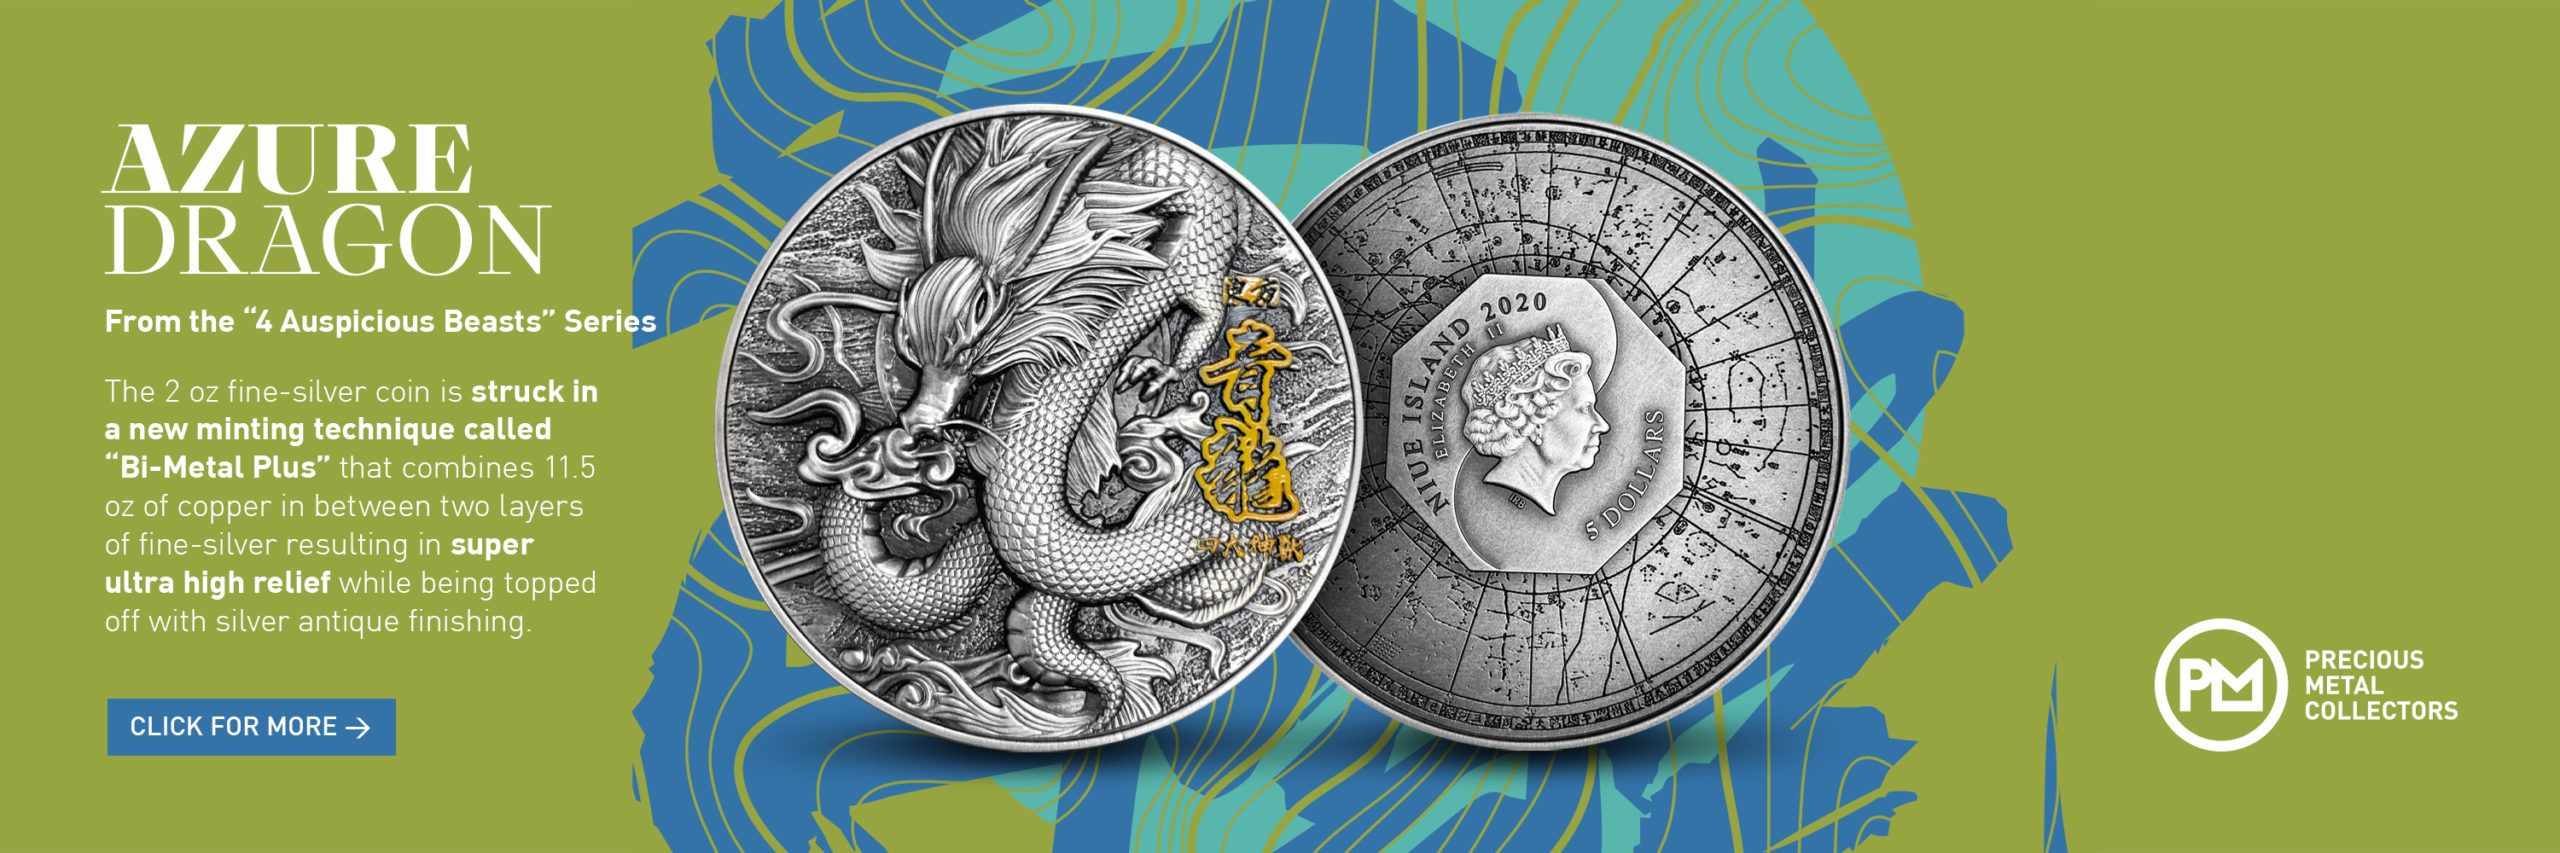 Azure Dragon 2 oz Silver Coin